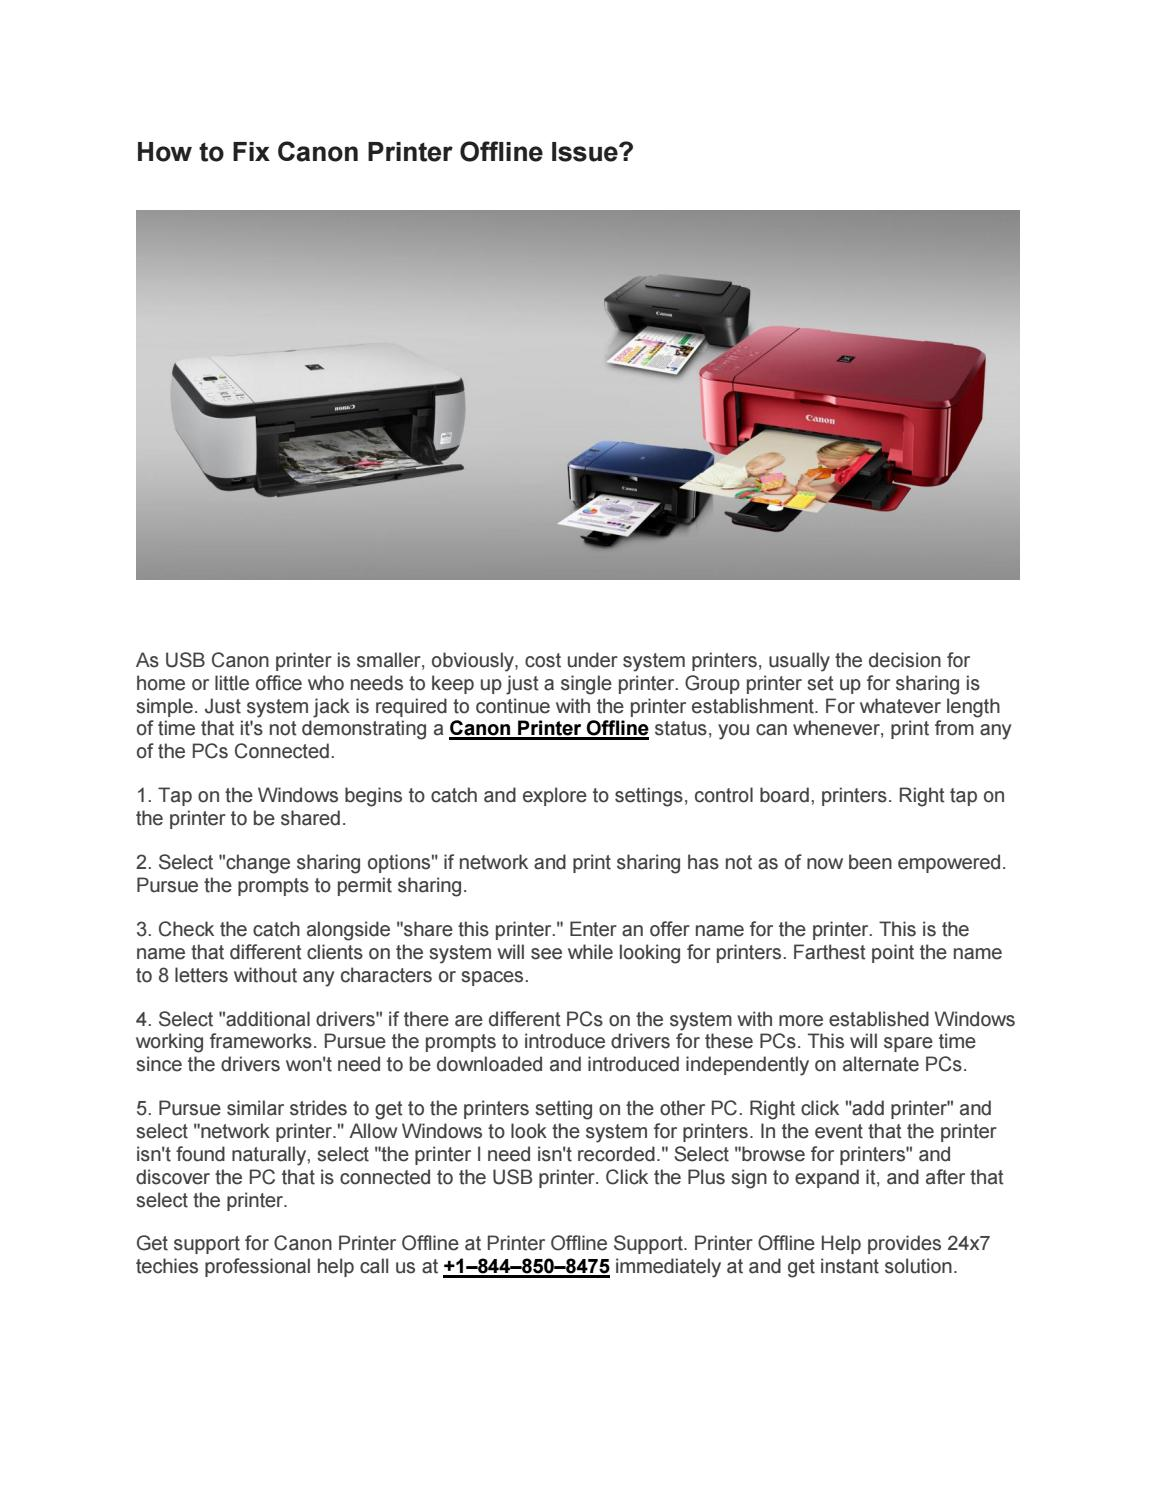 Immediate Solution for Canon Printer Offline by Ora Murphy